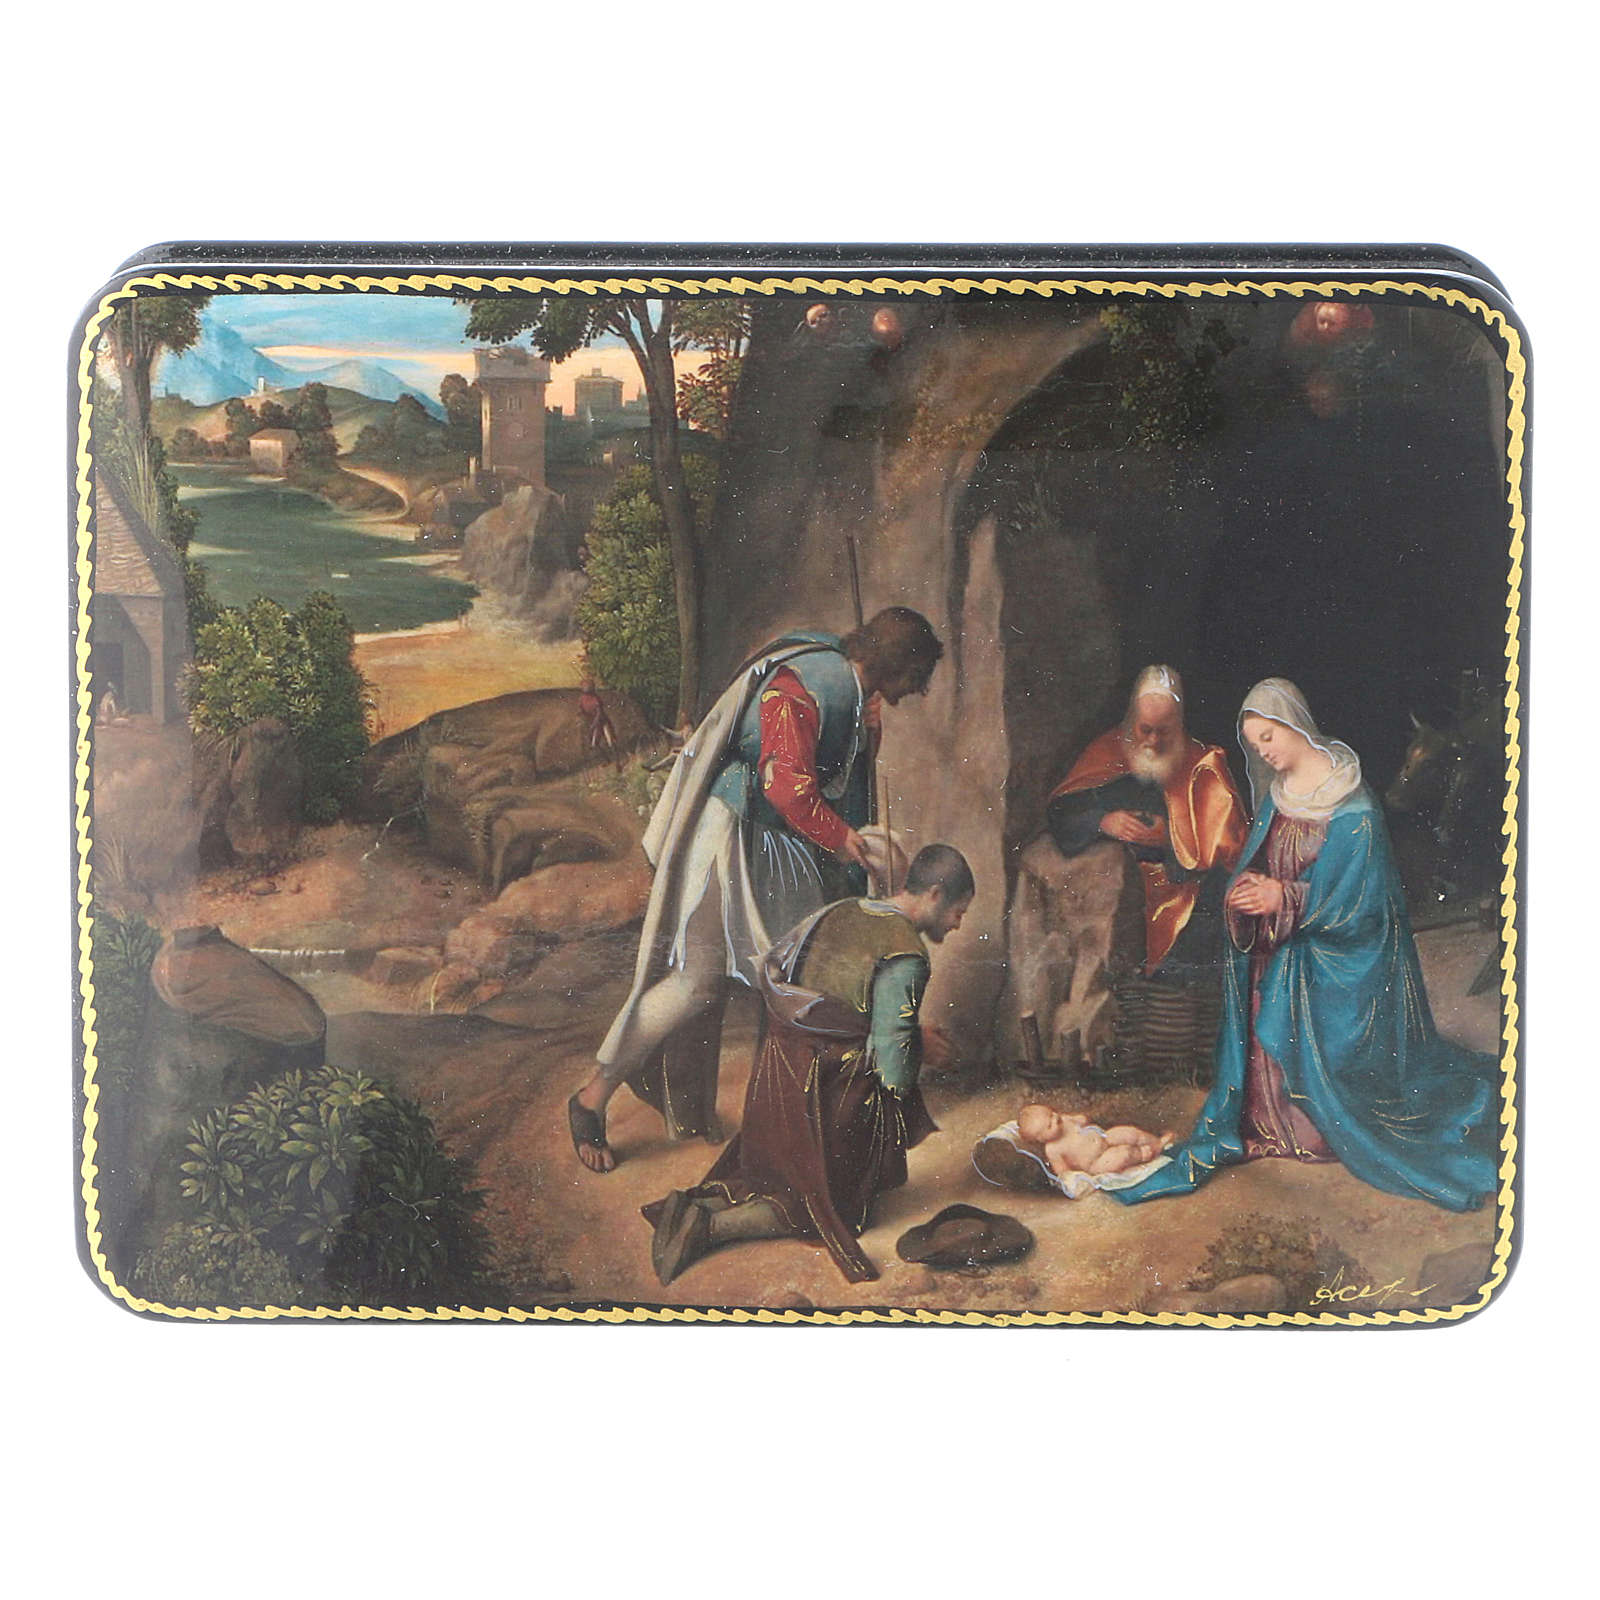 Russian lacquer and papier-mâché box The Shepherds in Adoration of the Holy Family Fedoskino style 15x11 cm 4